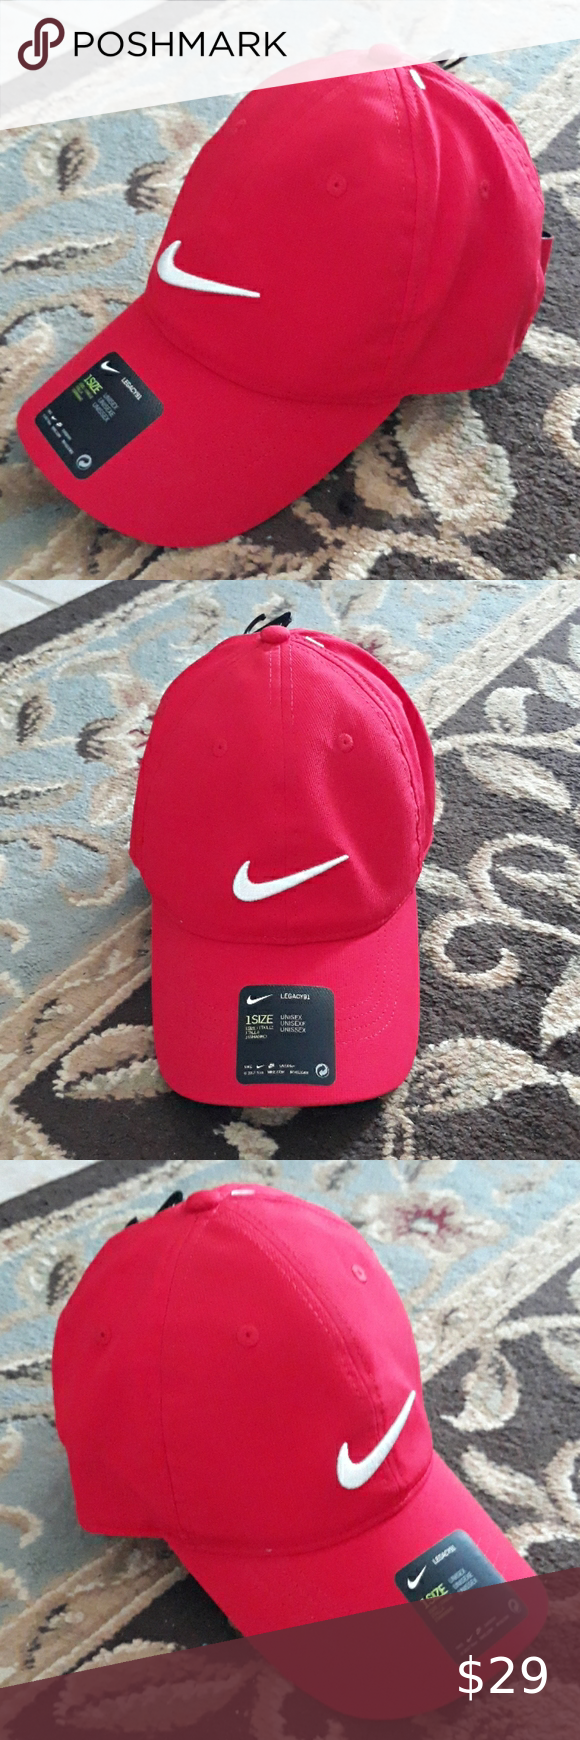 Nike Legacy Dri Fit Unisex Hat In 2021 Unisex Hat Fitted Hats Black Nike Hat